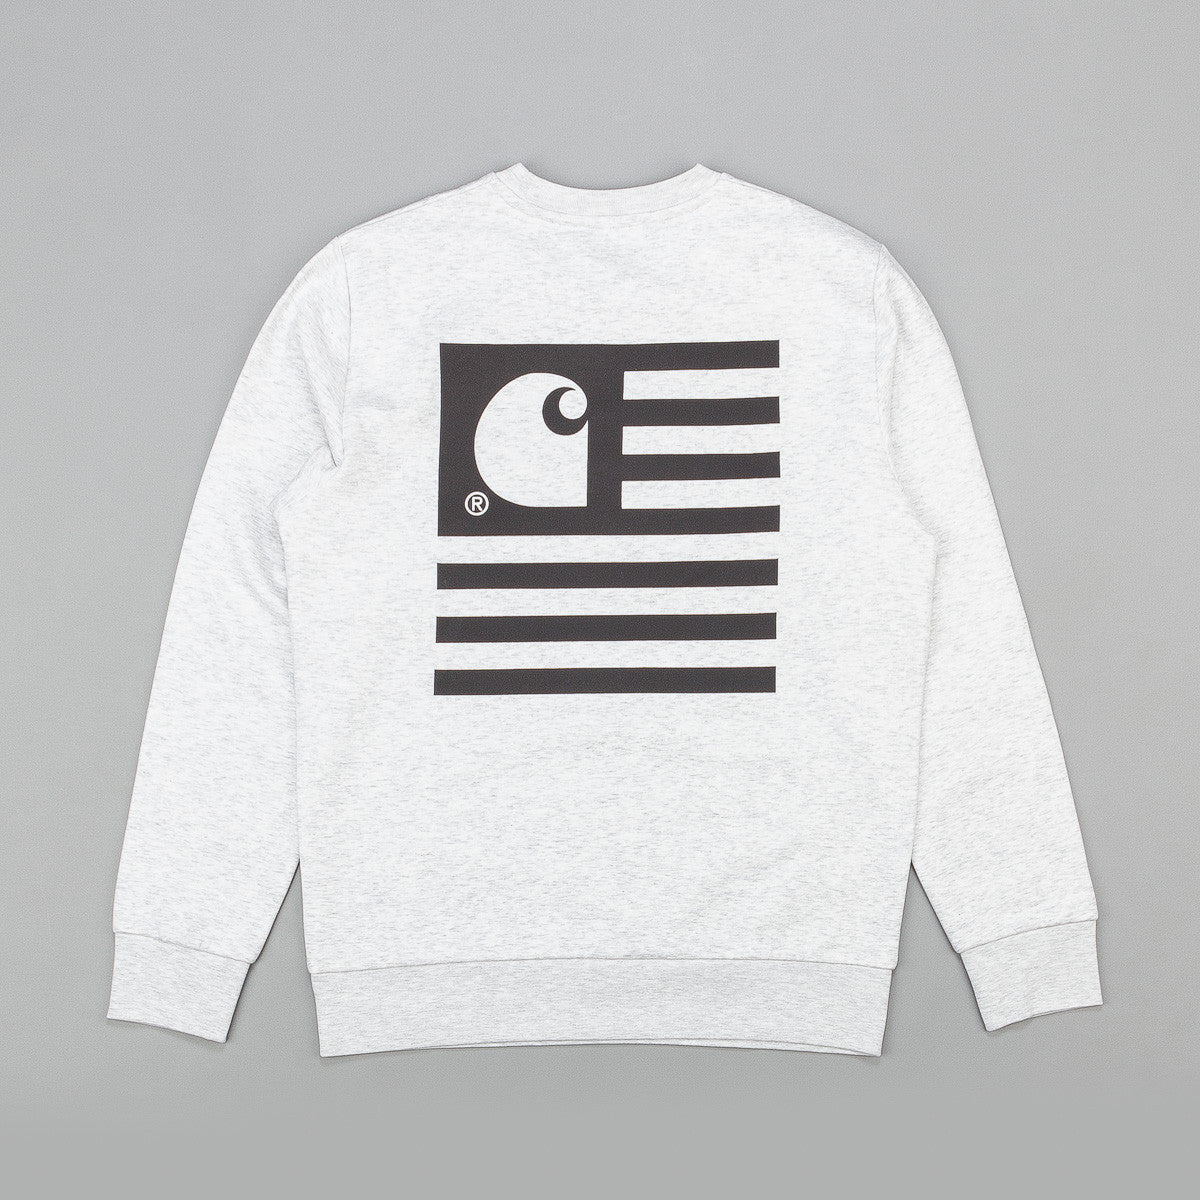 Carhartt State Flag Sweatshirt - Ash Heather / Black